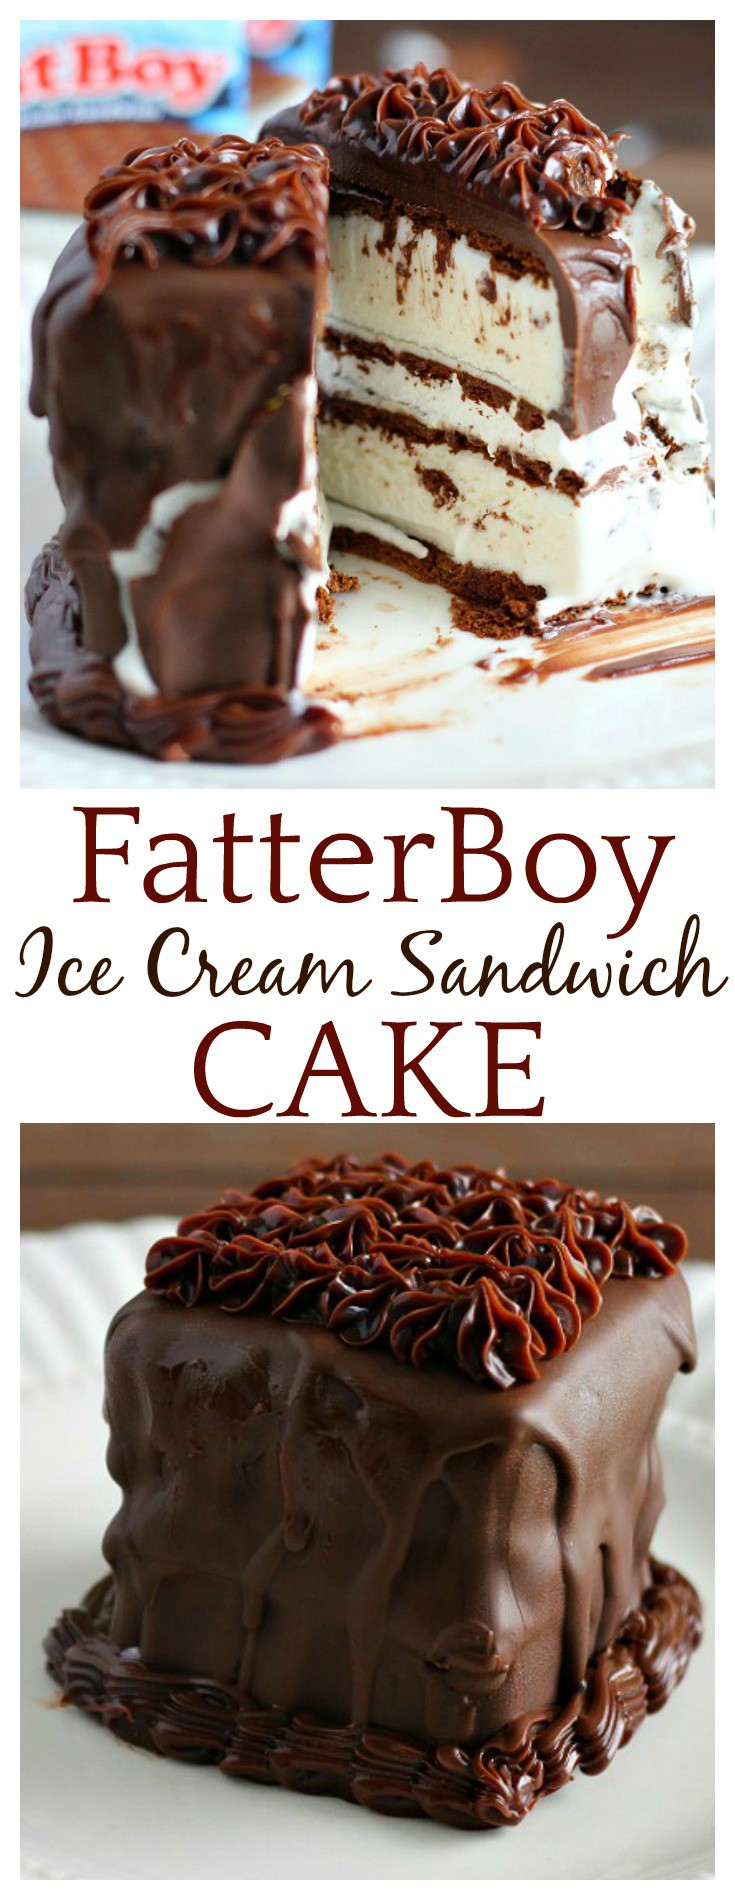 How do you make a FatBoy Ice Cream Sandwich even fatter? Turn it into a FatterBoy Ice Cream Sandwich Cake, of course! If you like ice cream sandwiches, whipped cream, and chocolate, then this easy recipe is for you! It's definitely a fun, indulgent treat!